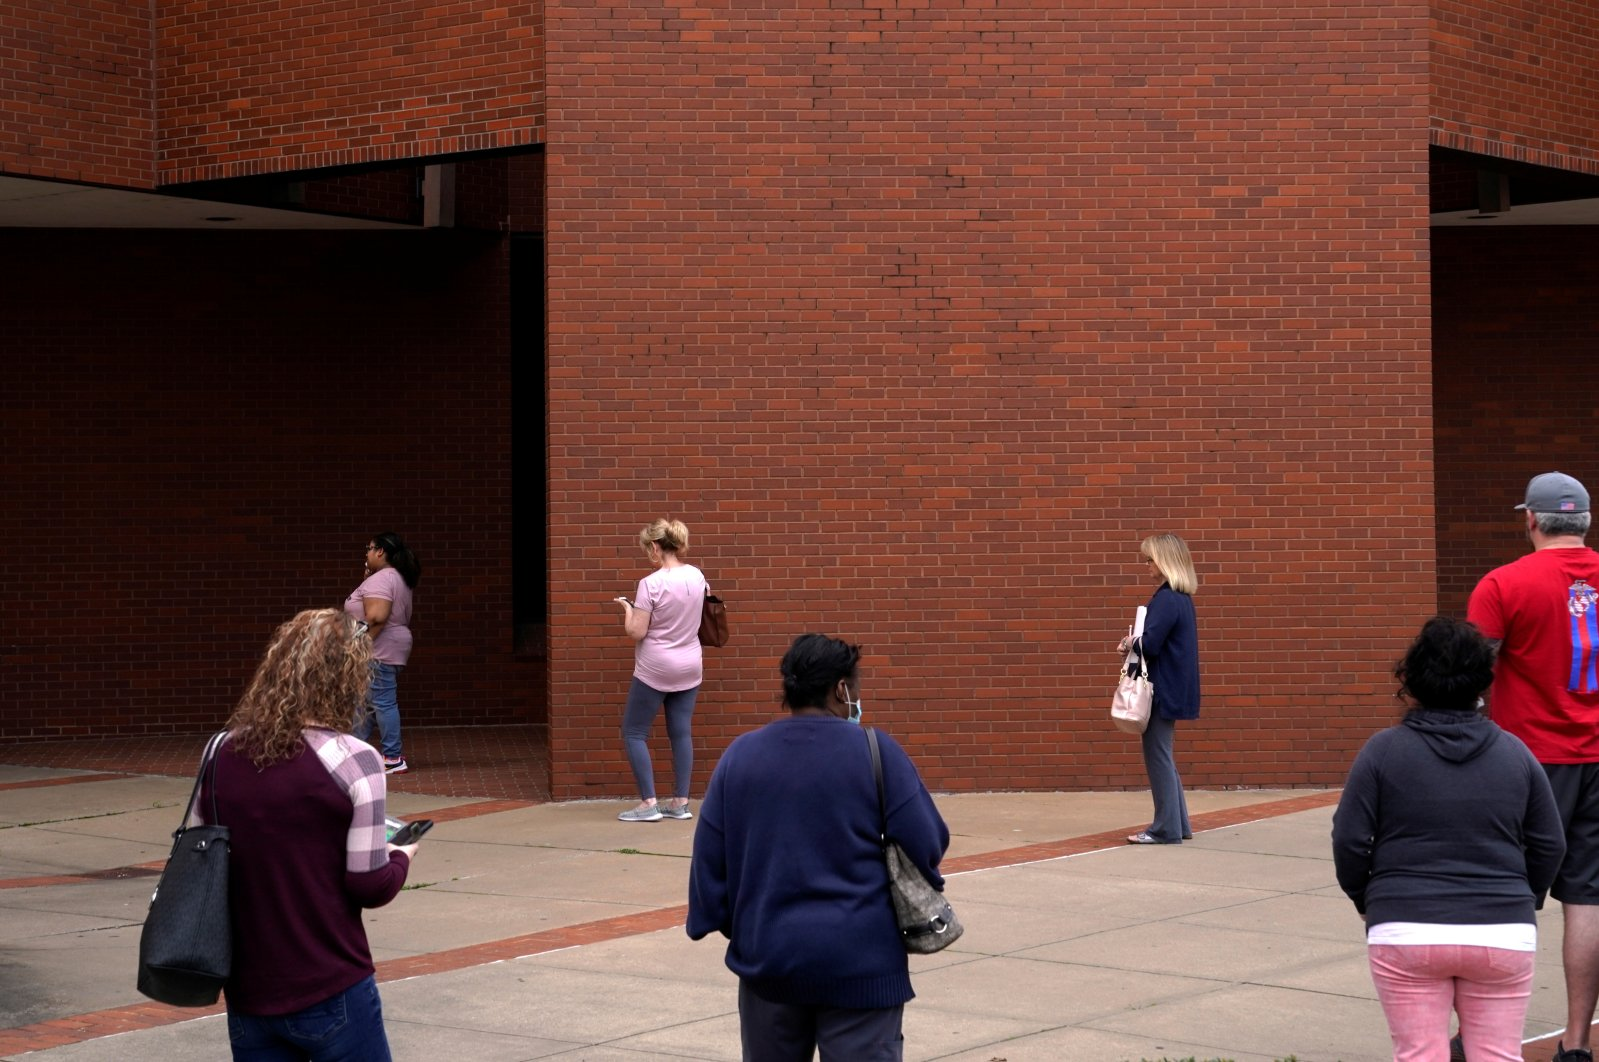 People who lost their jobs wait in line to file for unemployment benefits during the coronavirus outbreak, at an Arkansas Workforce Center in Fort Smith, Arkansas, U.S., April 6, 2020. (Reuters Photo)